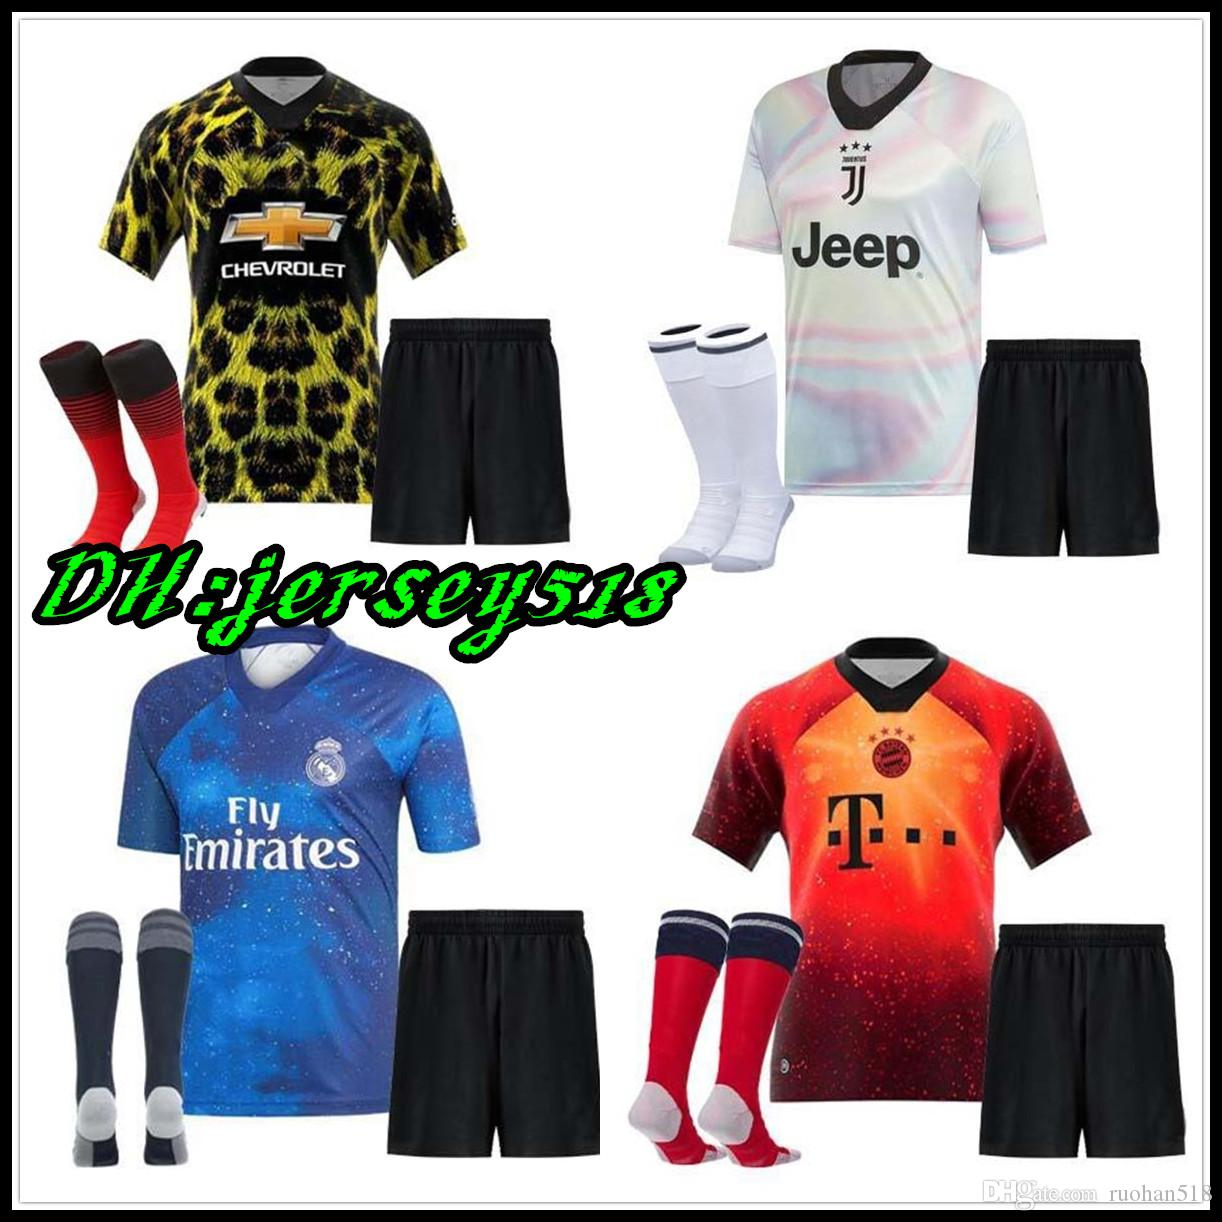 9596bbfc2 2019 2018 EA Sports Kids Kit INSANE Bayern Munich Man United JUVENTUS REAL  MADRID Child SOCCER JERSEYS SHIRT TRAINING RONALDO SPECIAL SHIRTS From  Ruohan518